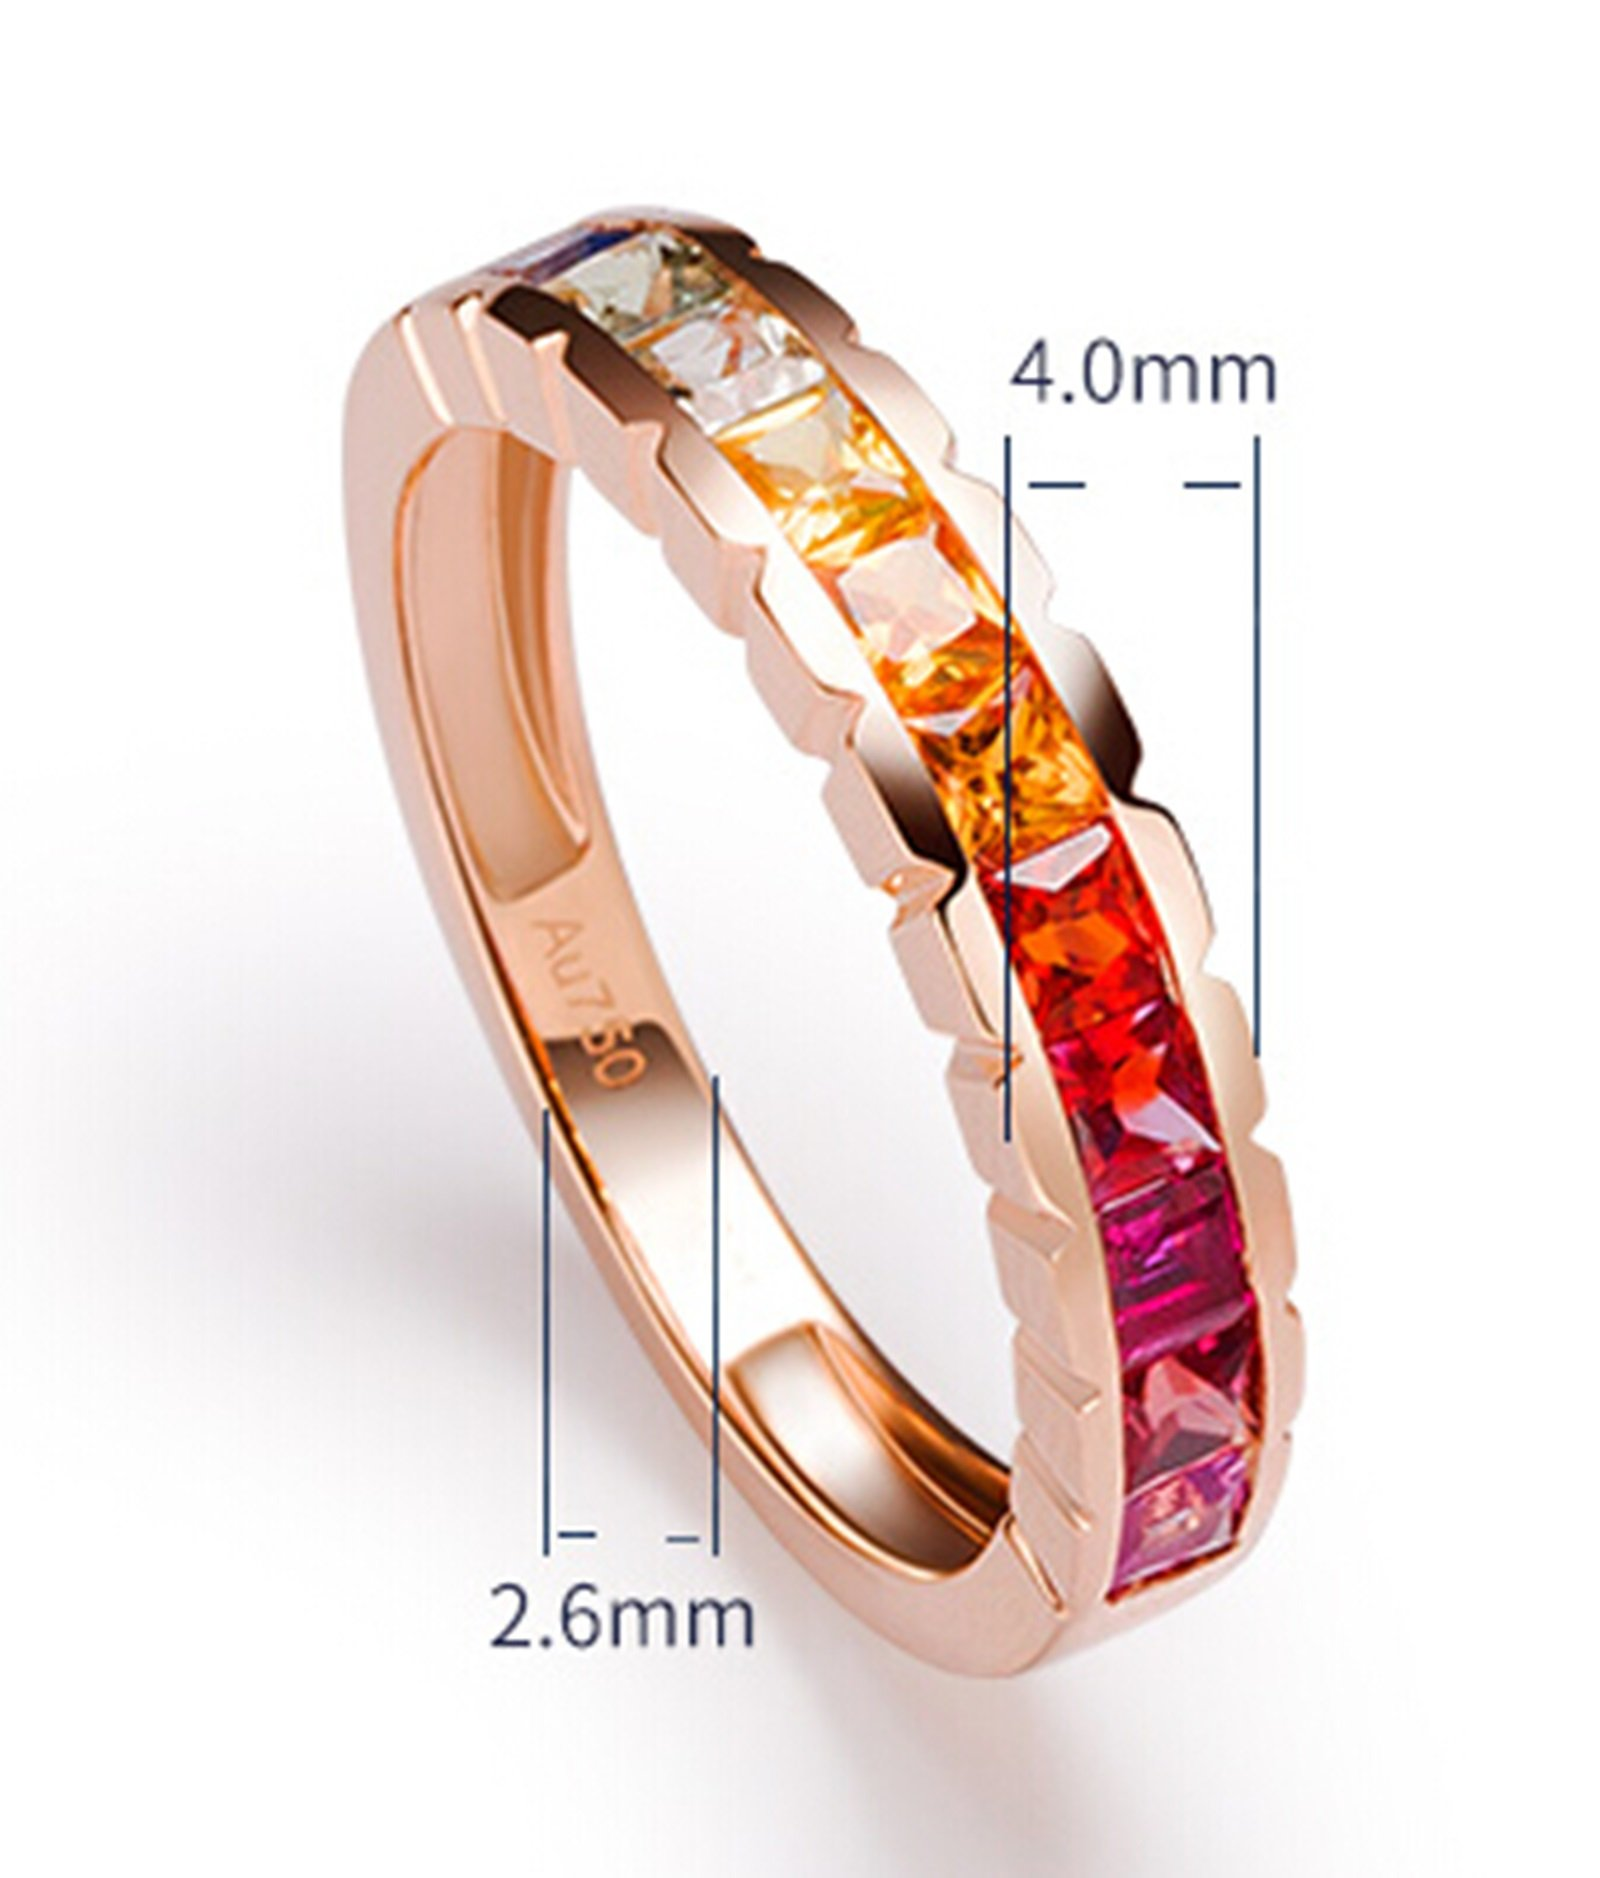 18K Gold Ring,1.2Ct Square Cut Certified Diamond Colorful Sapphire Ruby Promise Ring for Women Size 8 by Epinki (Image #4)